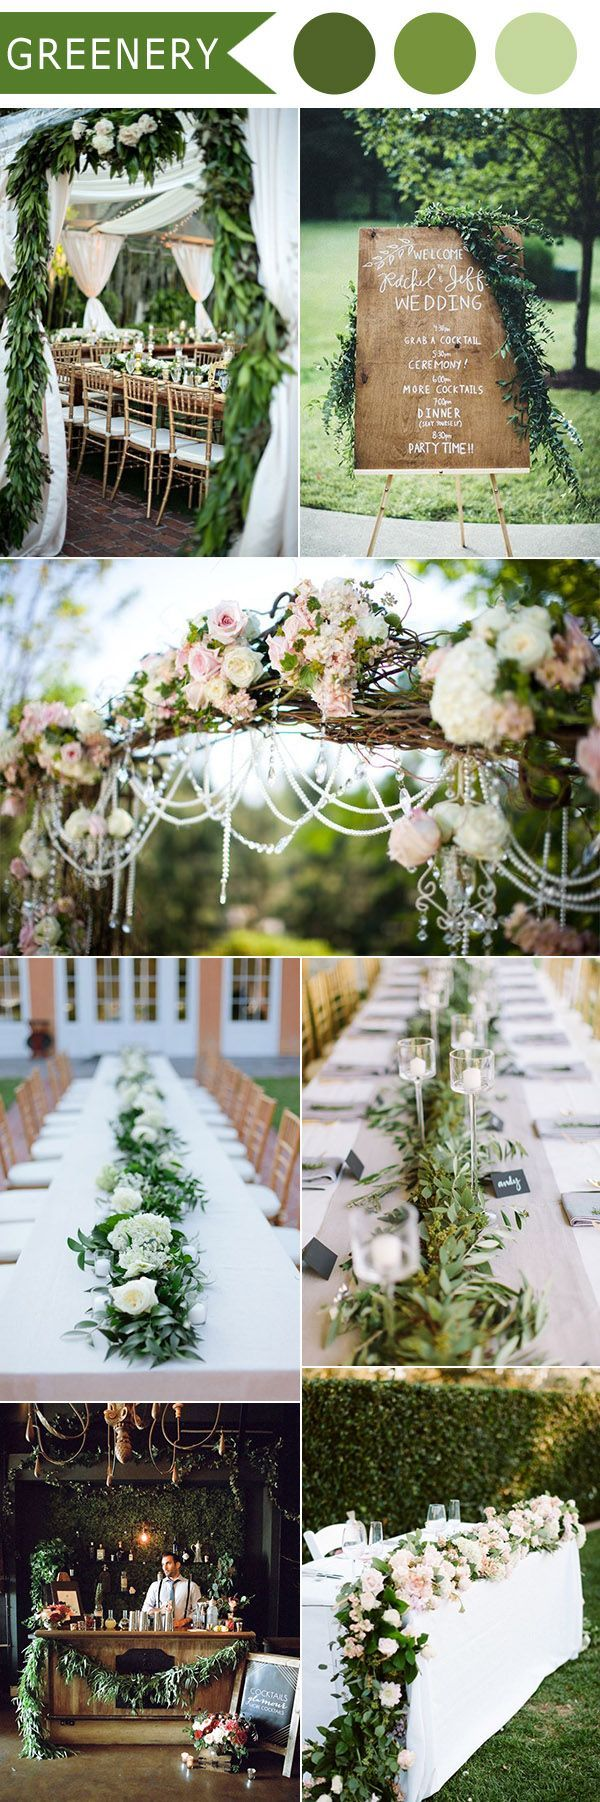 2016-trending-greenery-natural-lush-wedding-ideas.jpg (600×1802)